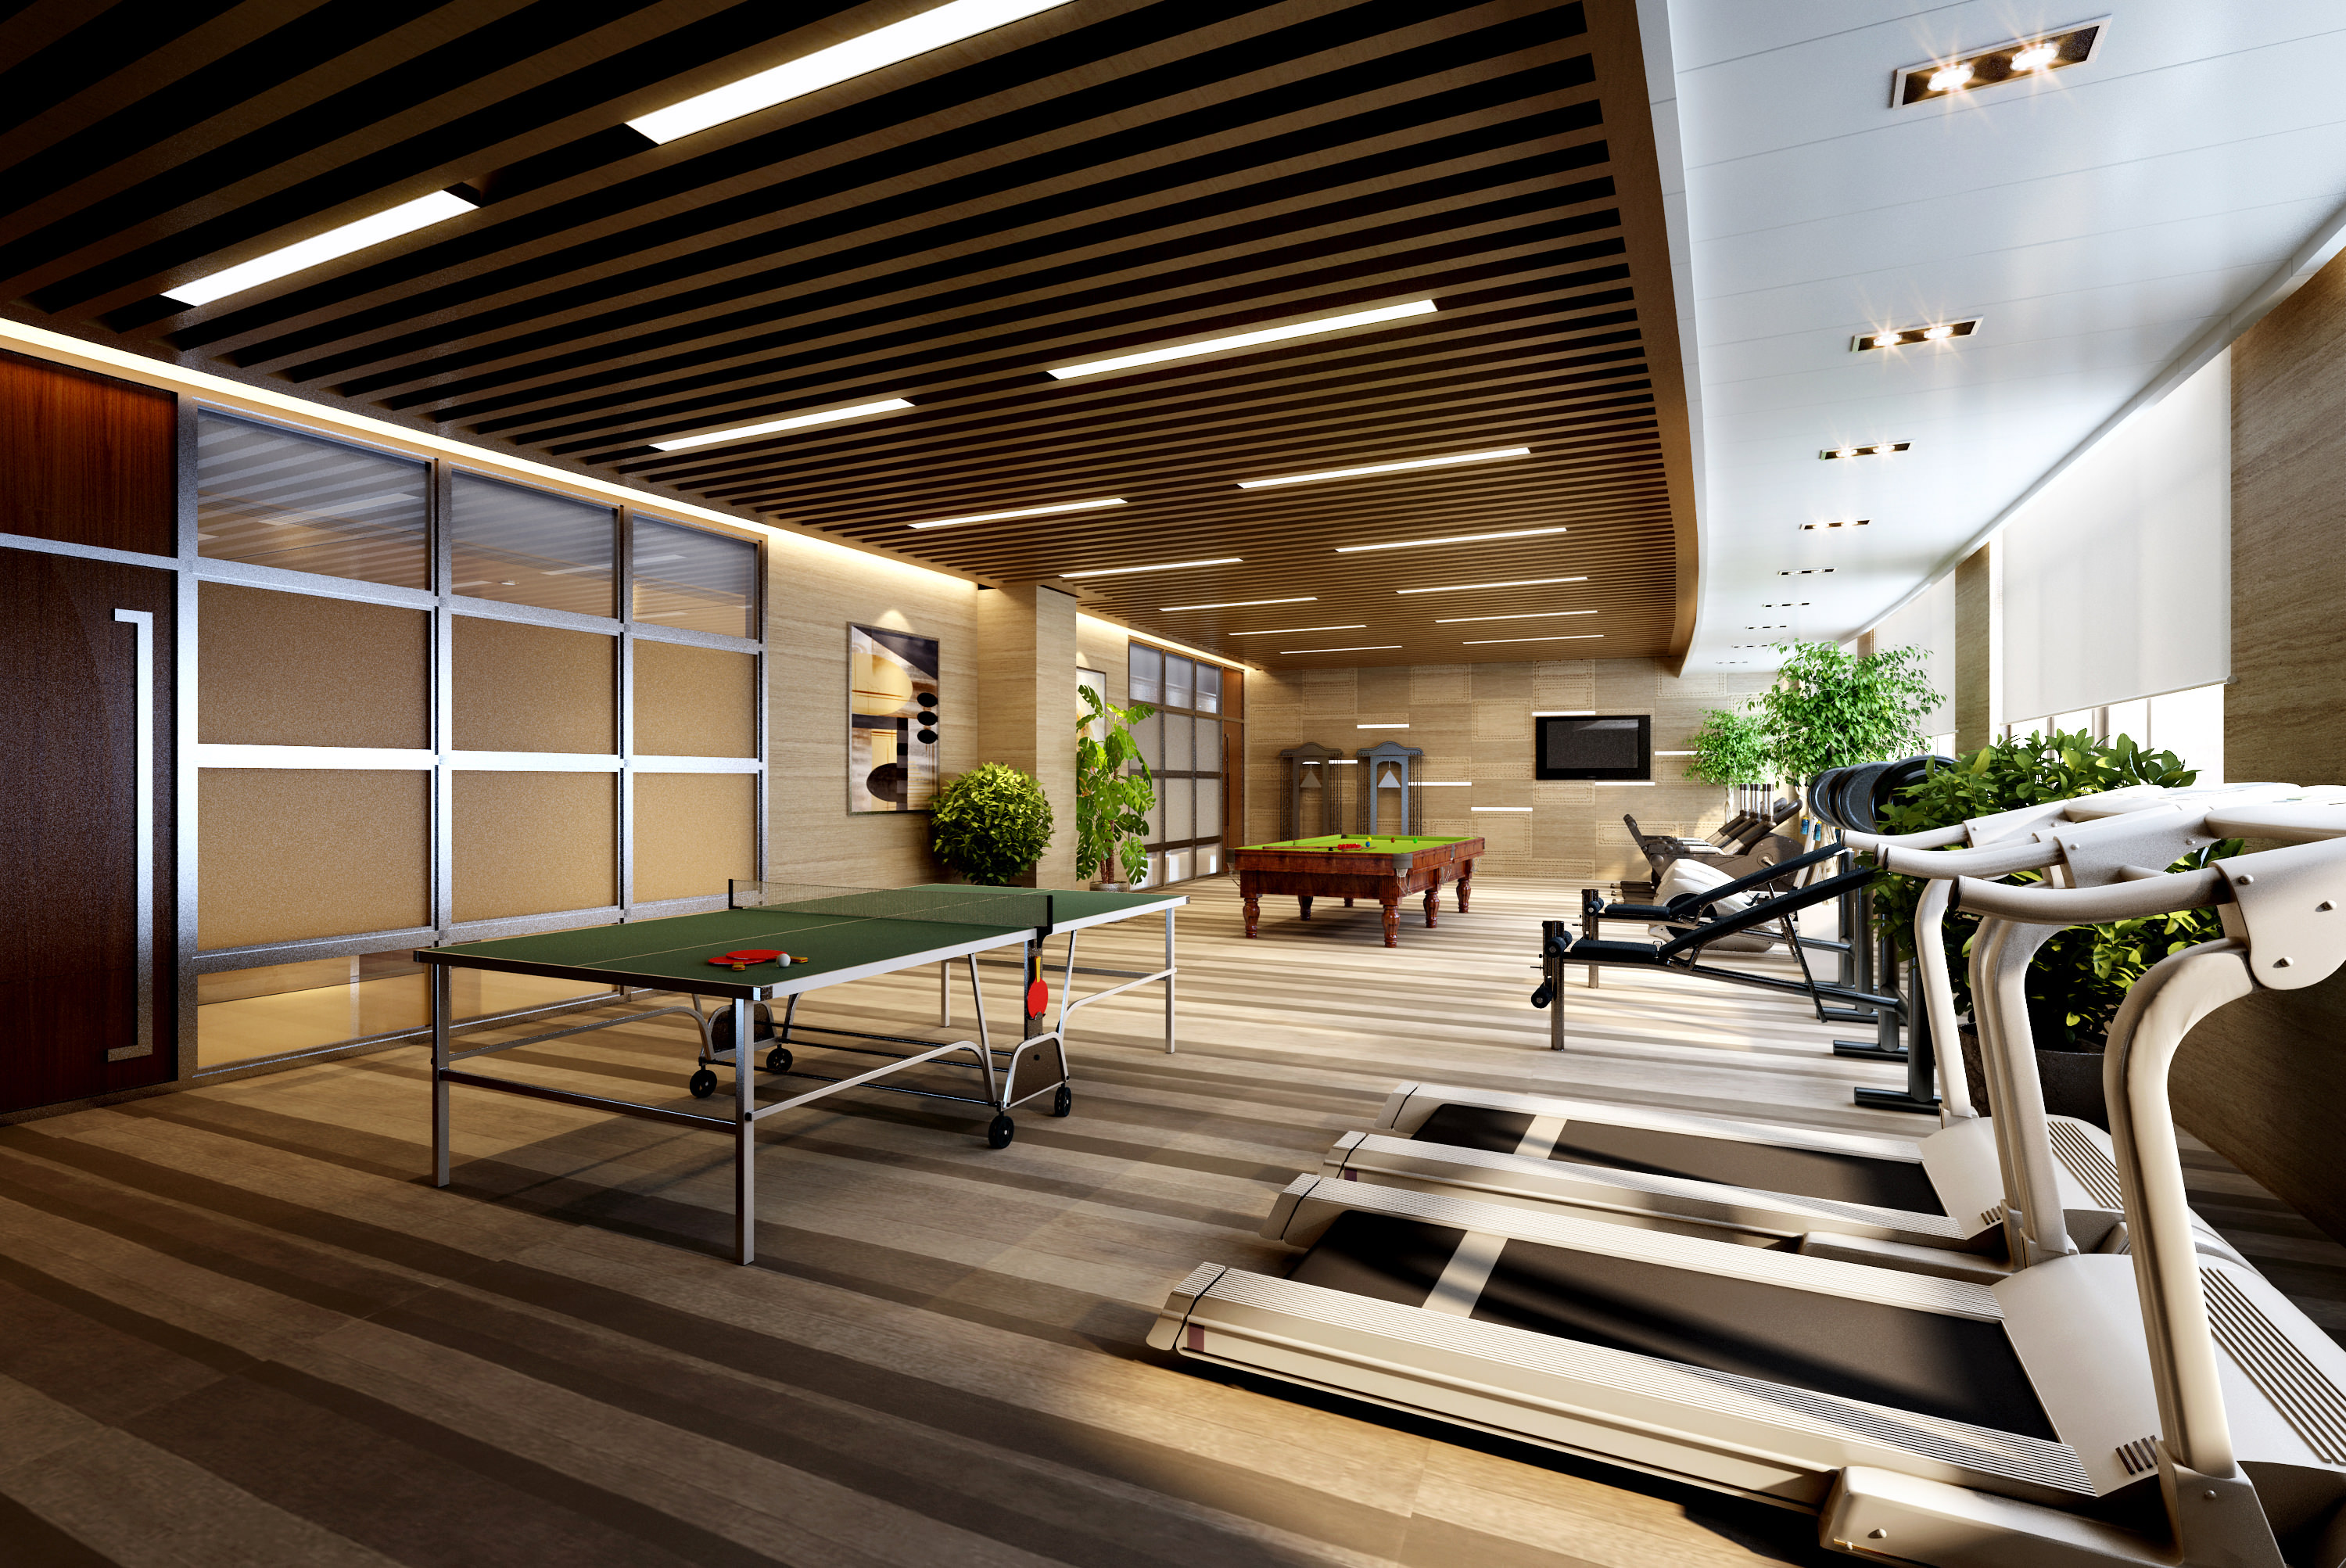 Gym with treadmills and table tennis tables 3d model max for Free gym layout design